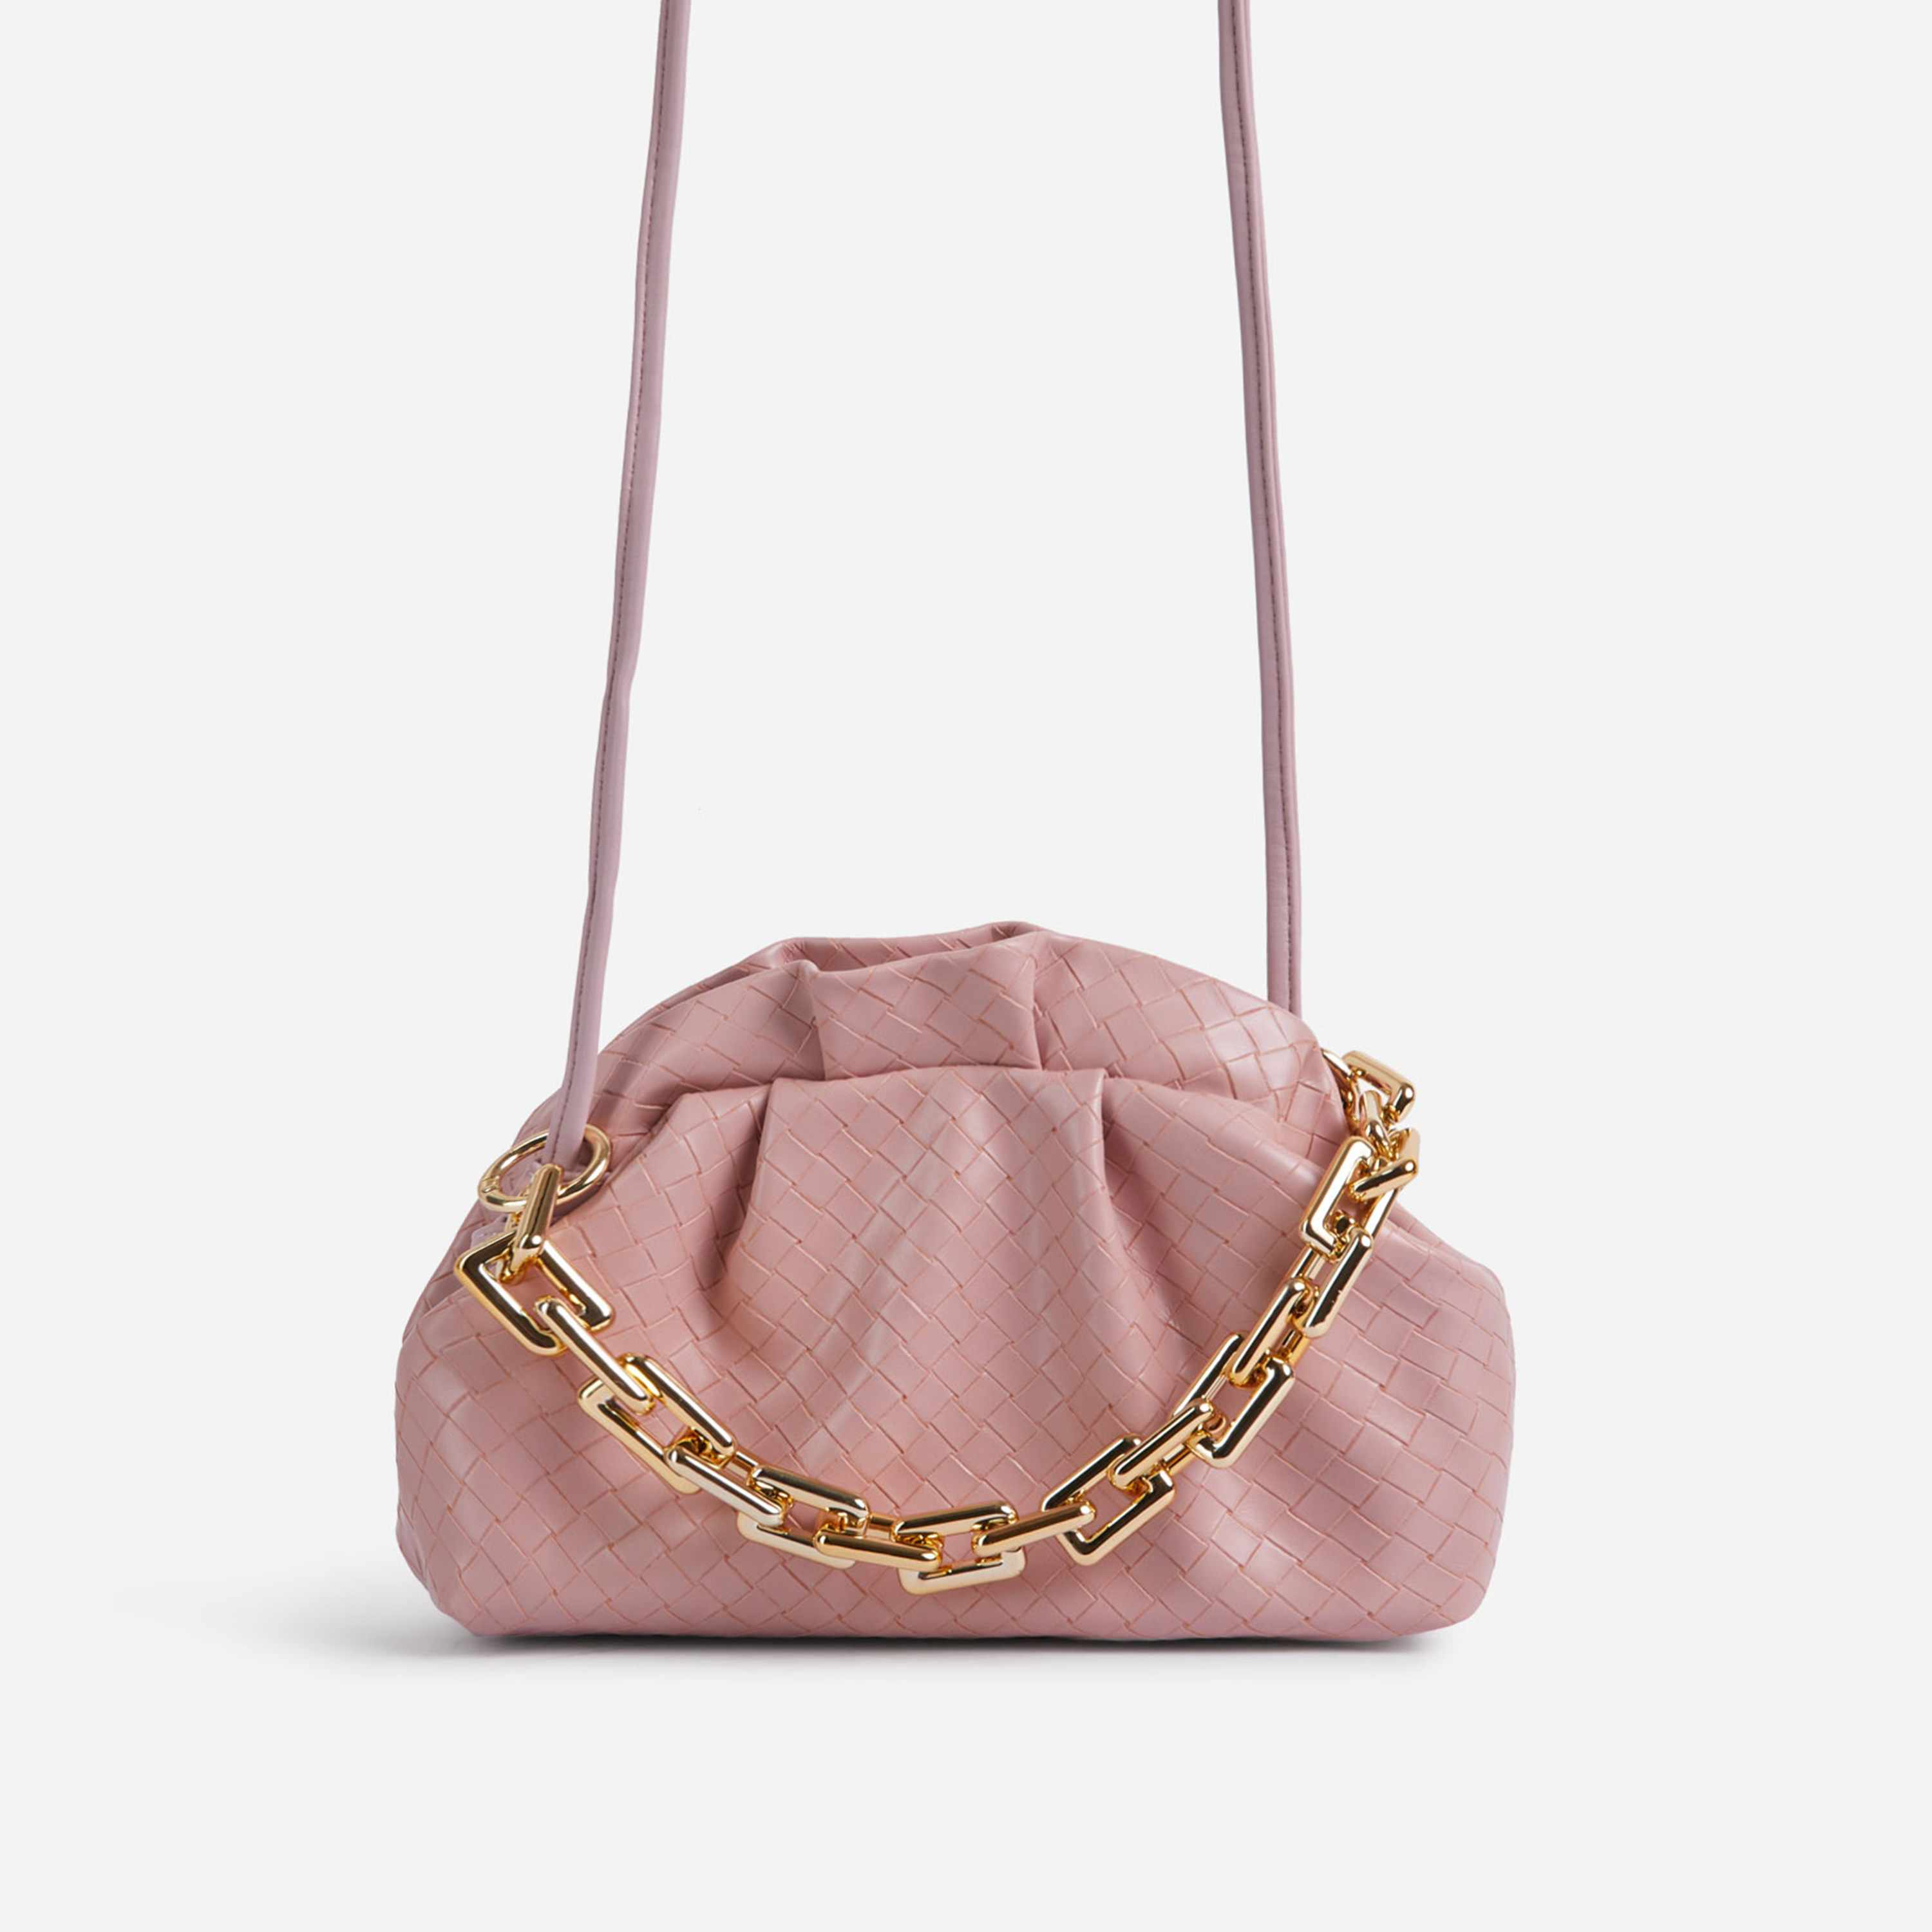 Pure Chain Detail Cross Body Pouch Bag In Pink Croc Print Faux Leather